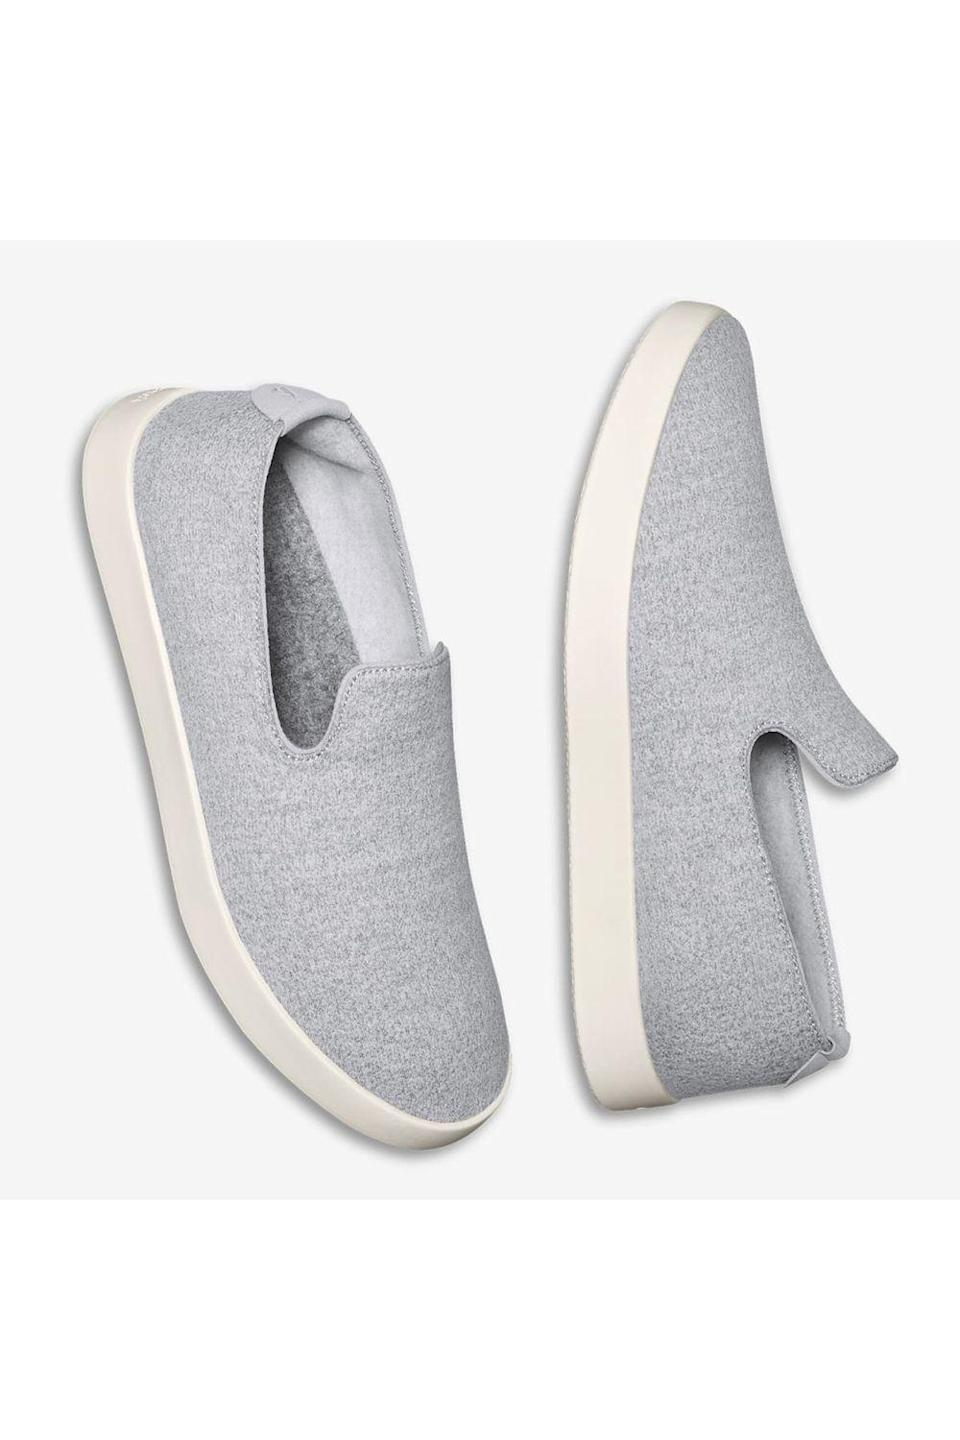 "<p><strong>Allbirds</strong></p><p>allbirds.com</p><p><strong>$95.00</strong></p><p><a href=""https://go.redirectingat.com?id=74968X1596630&url=https%3A%2F%2Fwww.allbirds.com%2Fproducts%2Fwomens-wool-loungers&sref=https%3A%2F%2Fwww.oprahmag.com%2Fstyle%2Fg28799071%2Fplus-size-fall-fashion-outfits%2F"" rel=""nofollow noopener"" target=""_blank"" data-ylk=""slk:SHOP NOW"" class=""link rapid-noclick-resp"">SHOP NOW</a></p>"